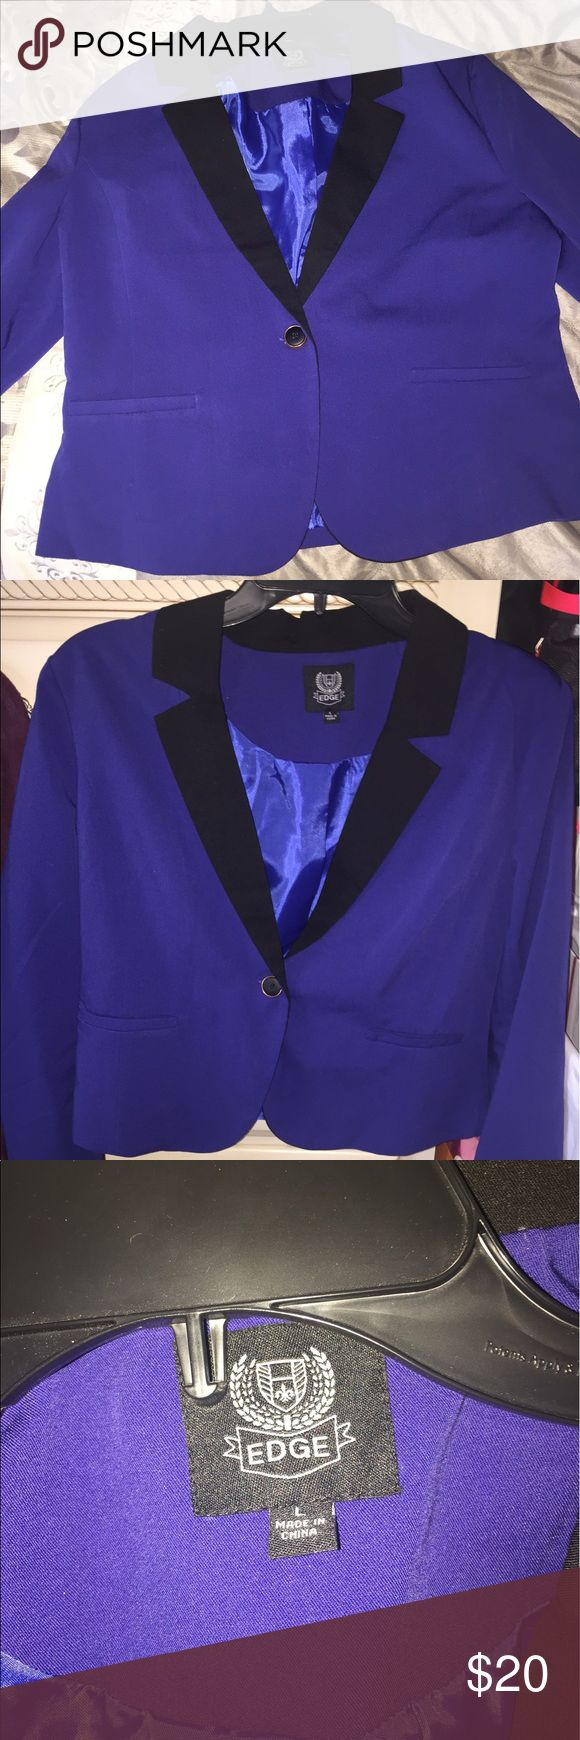 ROYAL BLUE BLAZER EXCELLENT CONDITION WORE ONCE Royal blue blazer with black edging, excellent condition, wore once Fashion Nova Jackets & Coats Blazers